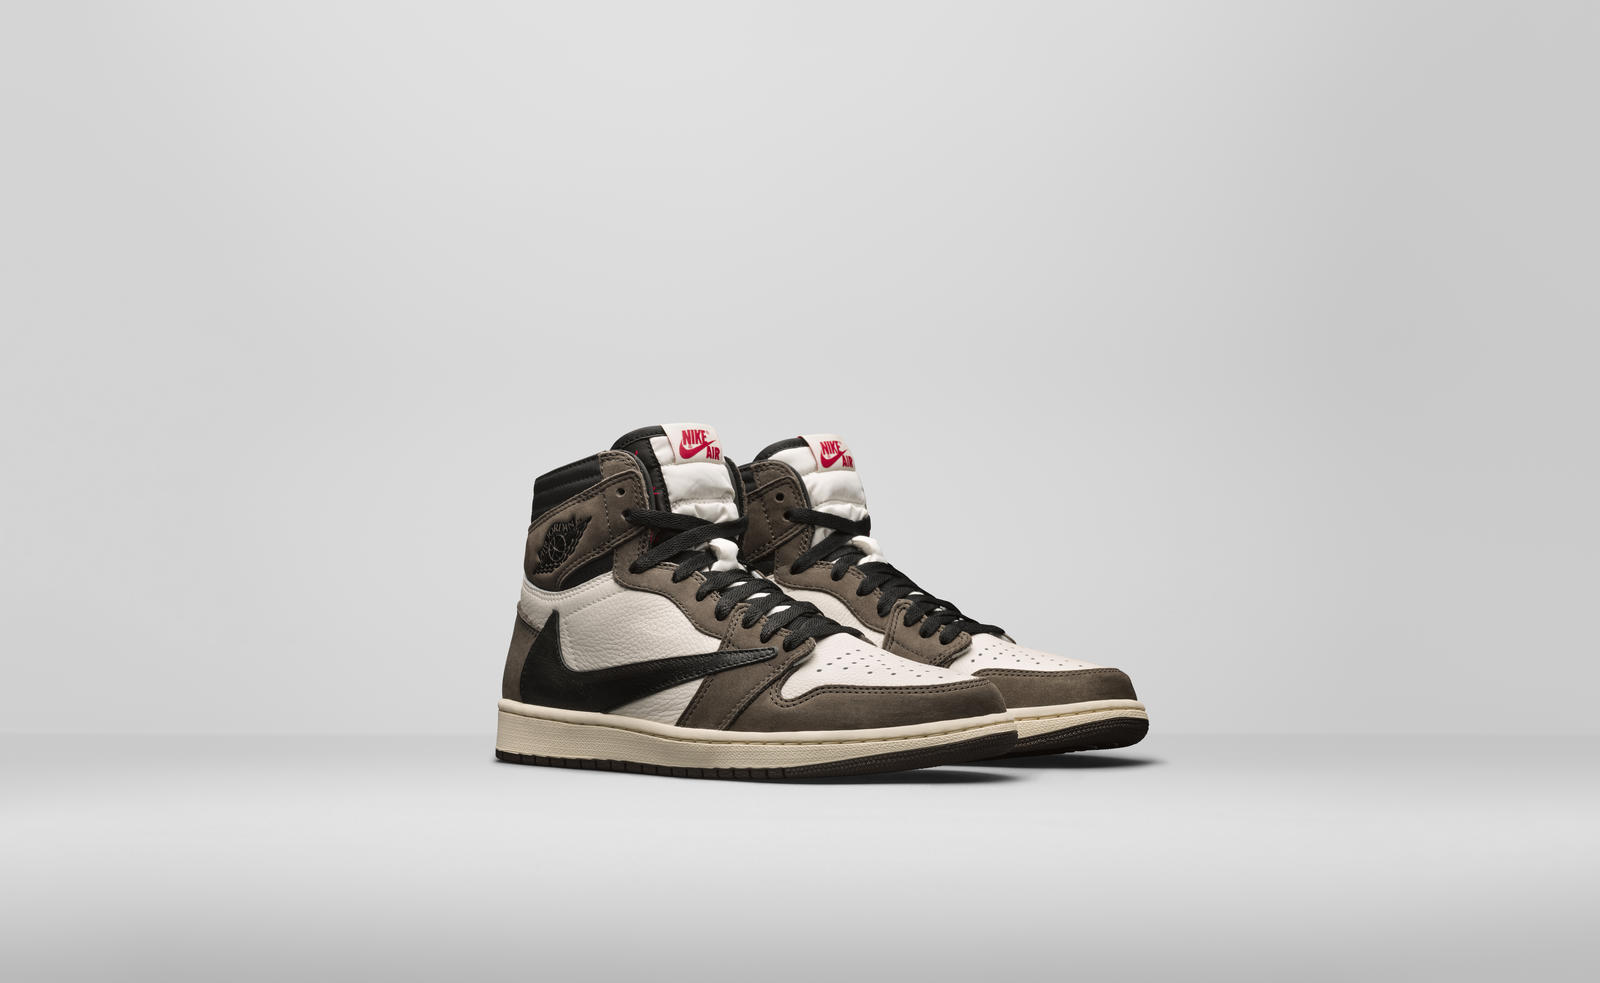 travis-scott-air-jordan-1-high-og-apparel-collection-release-20190511